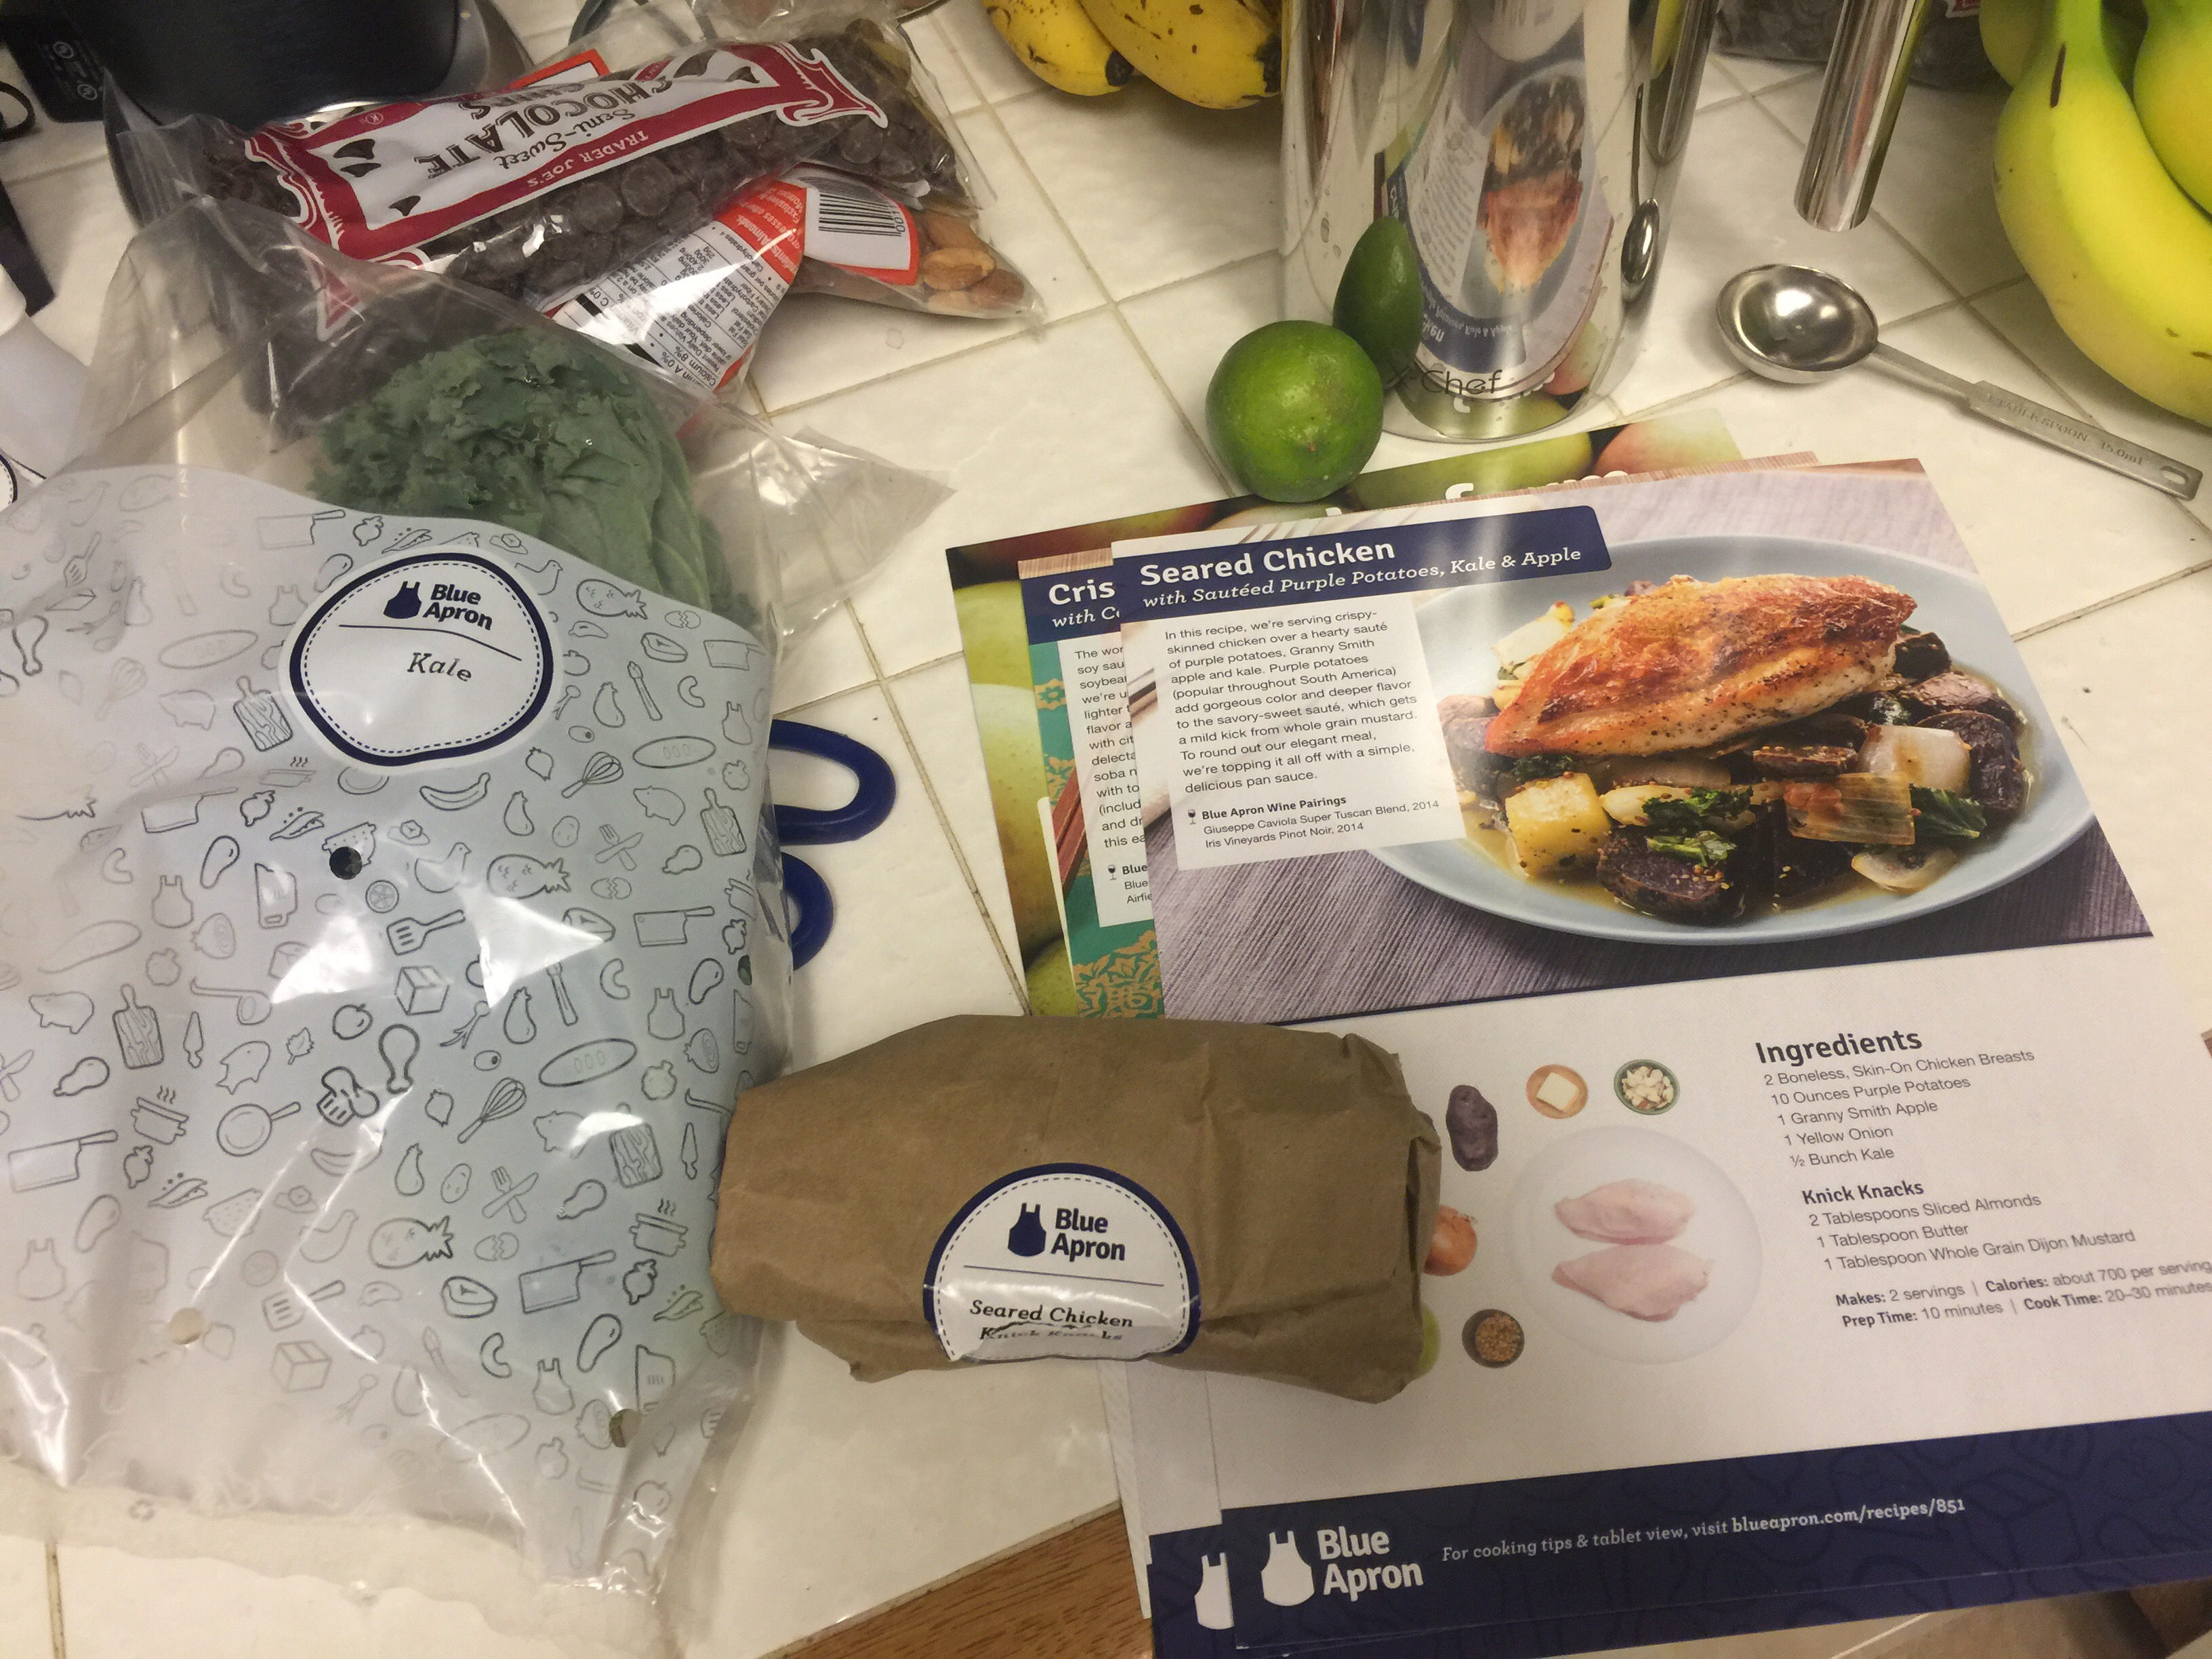 Blue apron drug test - From What I Ve Tasted So Far They Have But This Week Will Be The Real Test